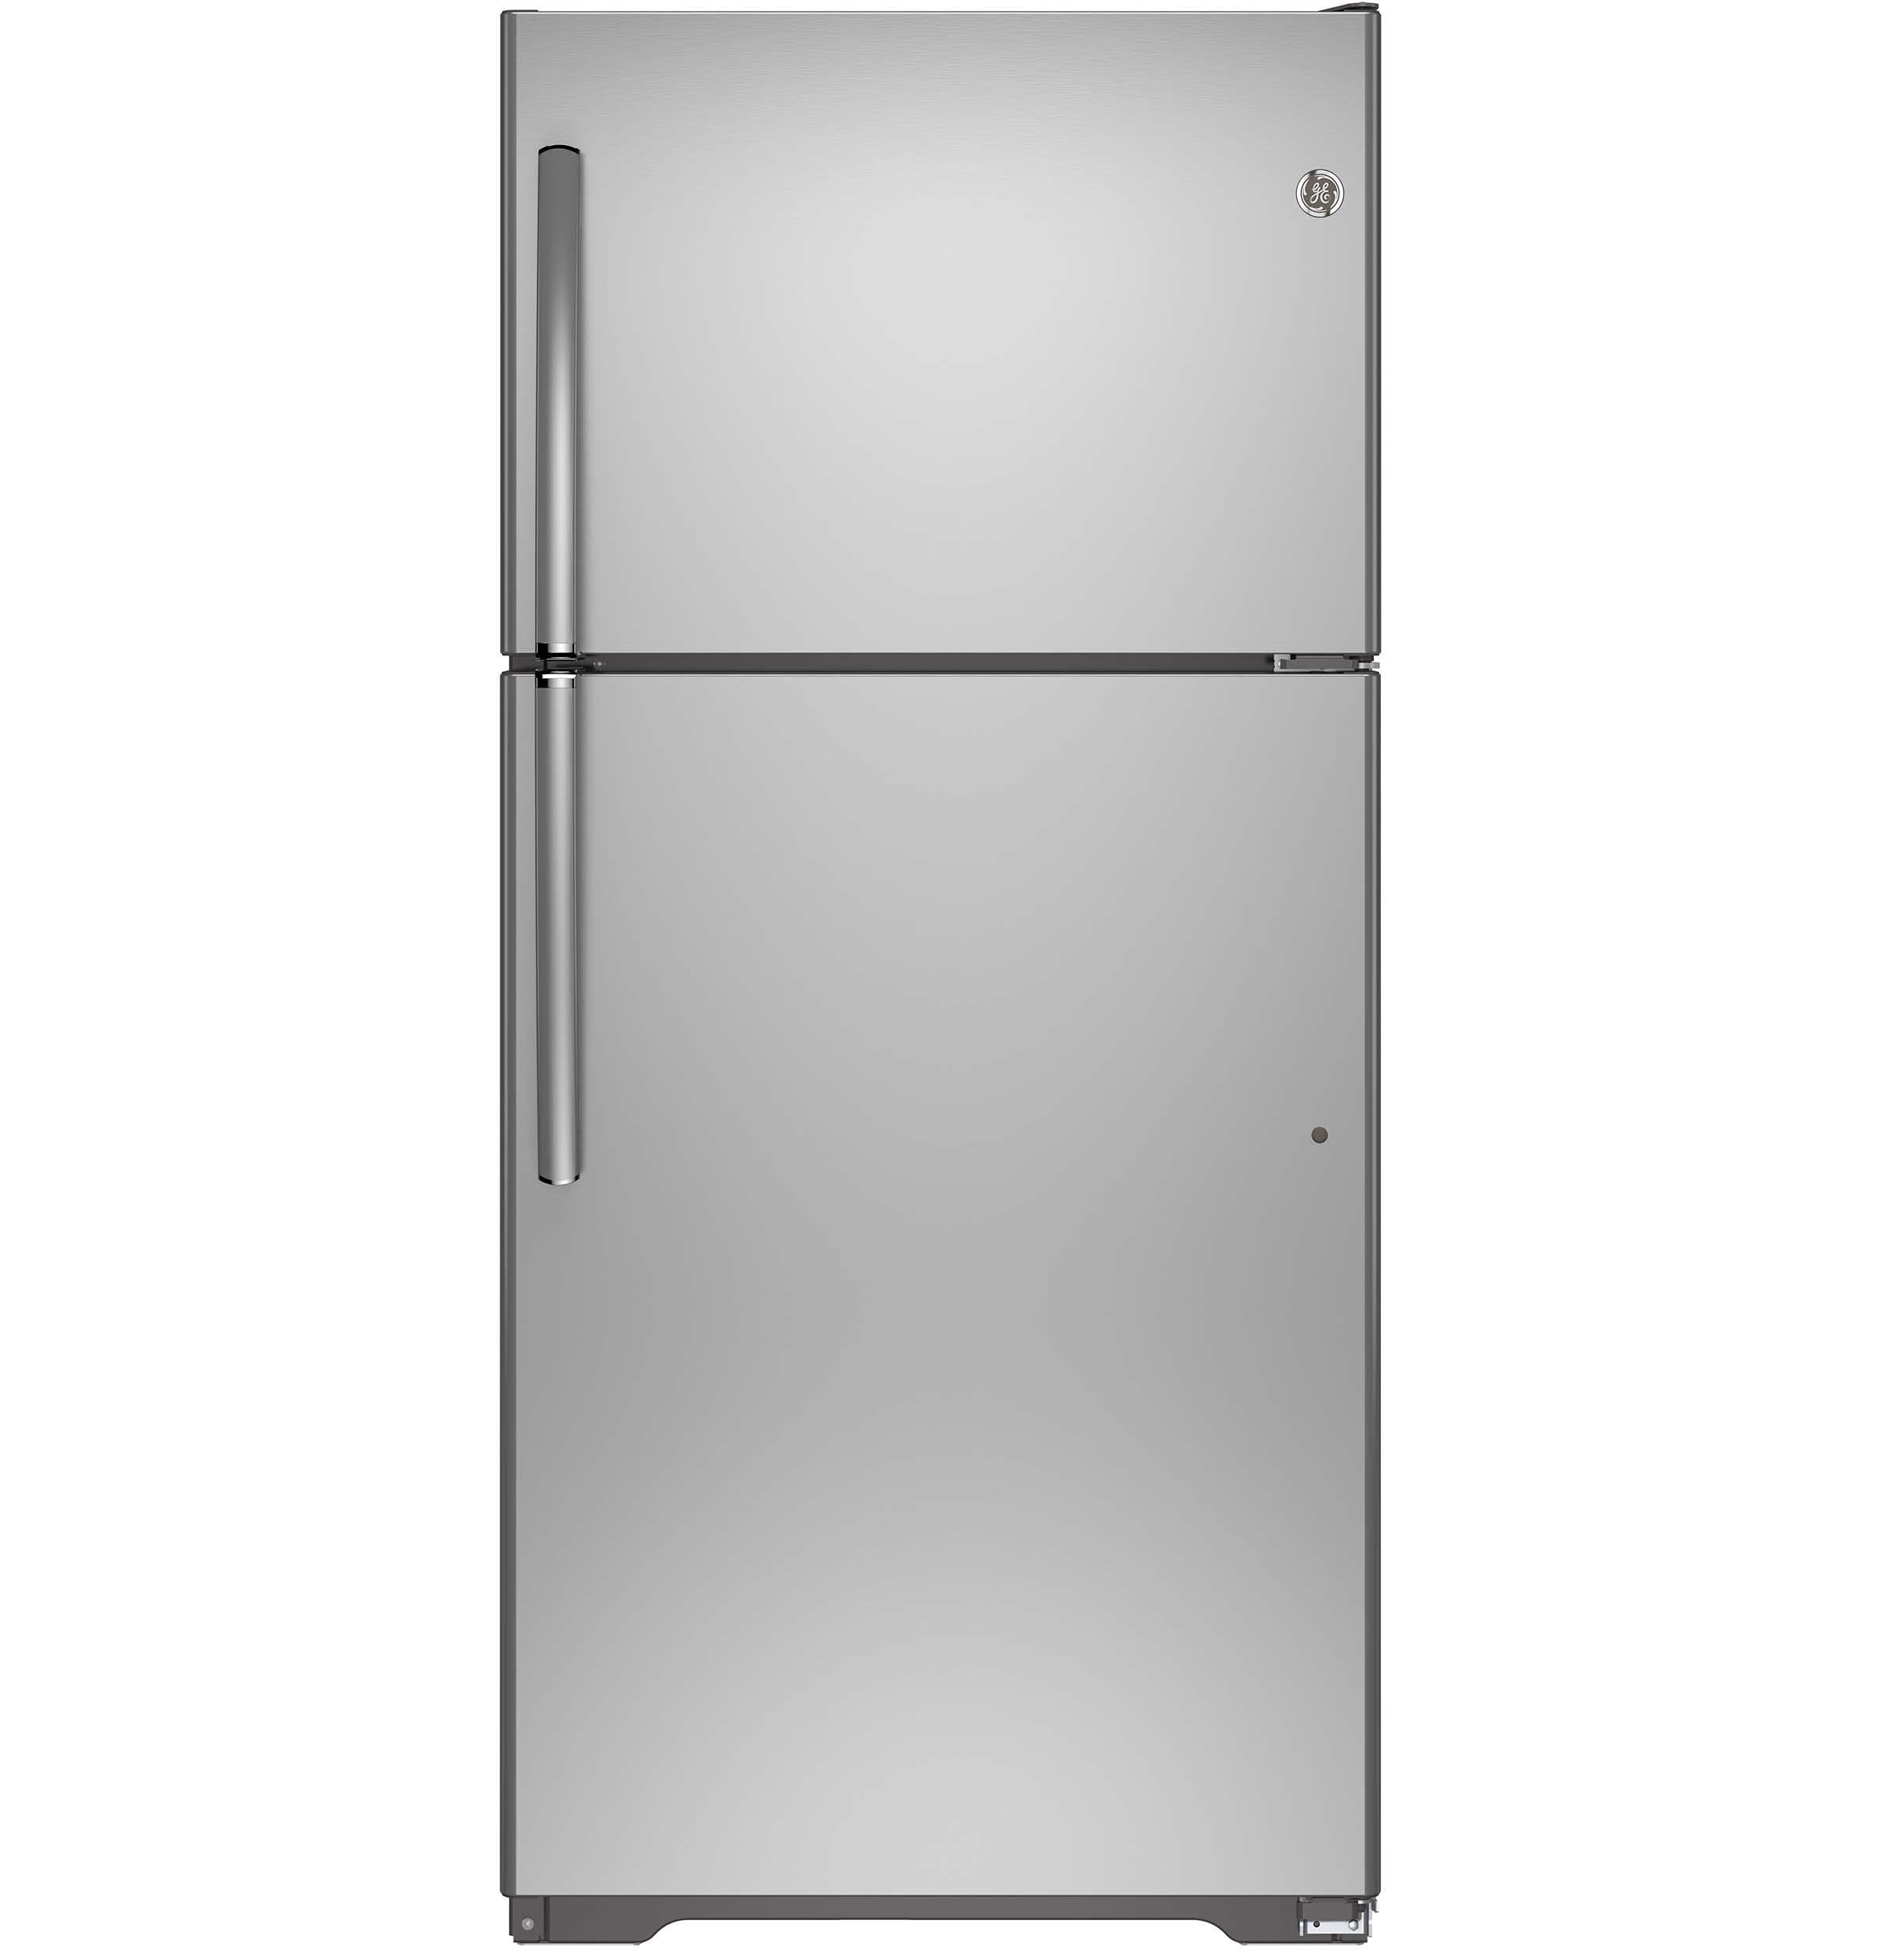 GE(R) ENERGY STAR(R) 18.2 Cu. Ft. Top-Freezer Refrigerator